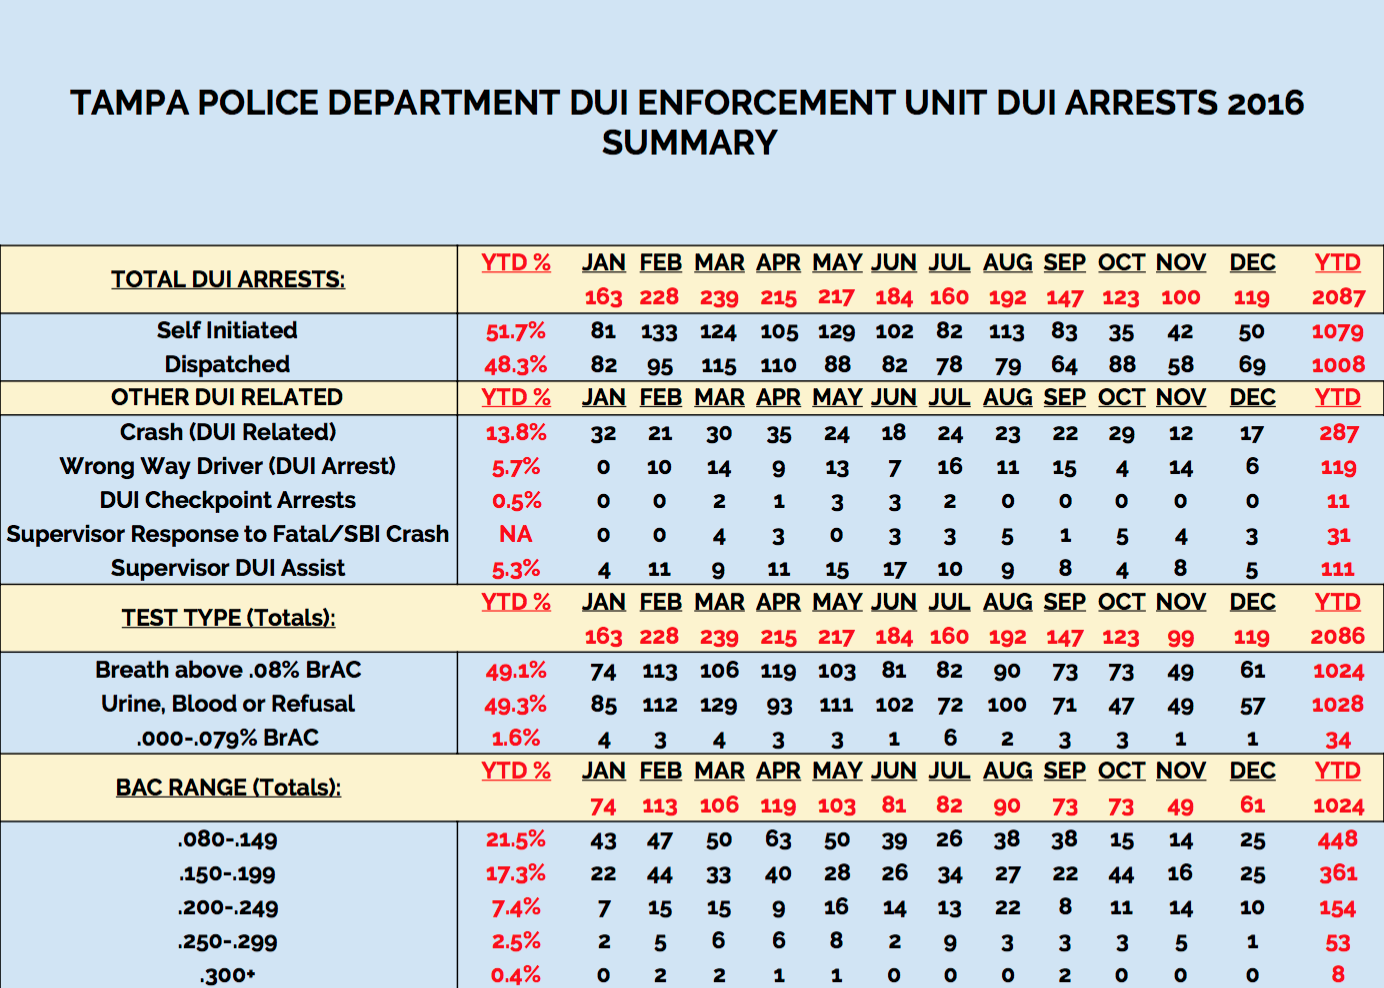 2016 Tampa Police Department DUI Arrests Summary